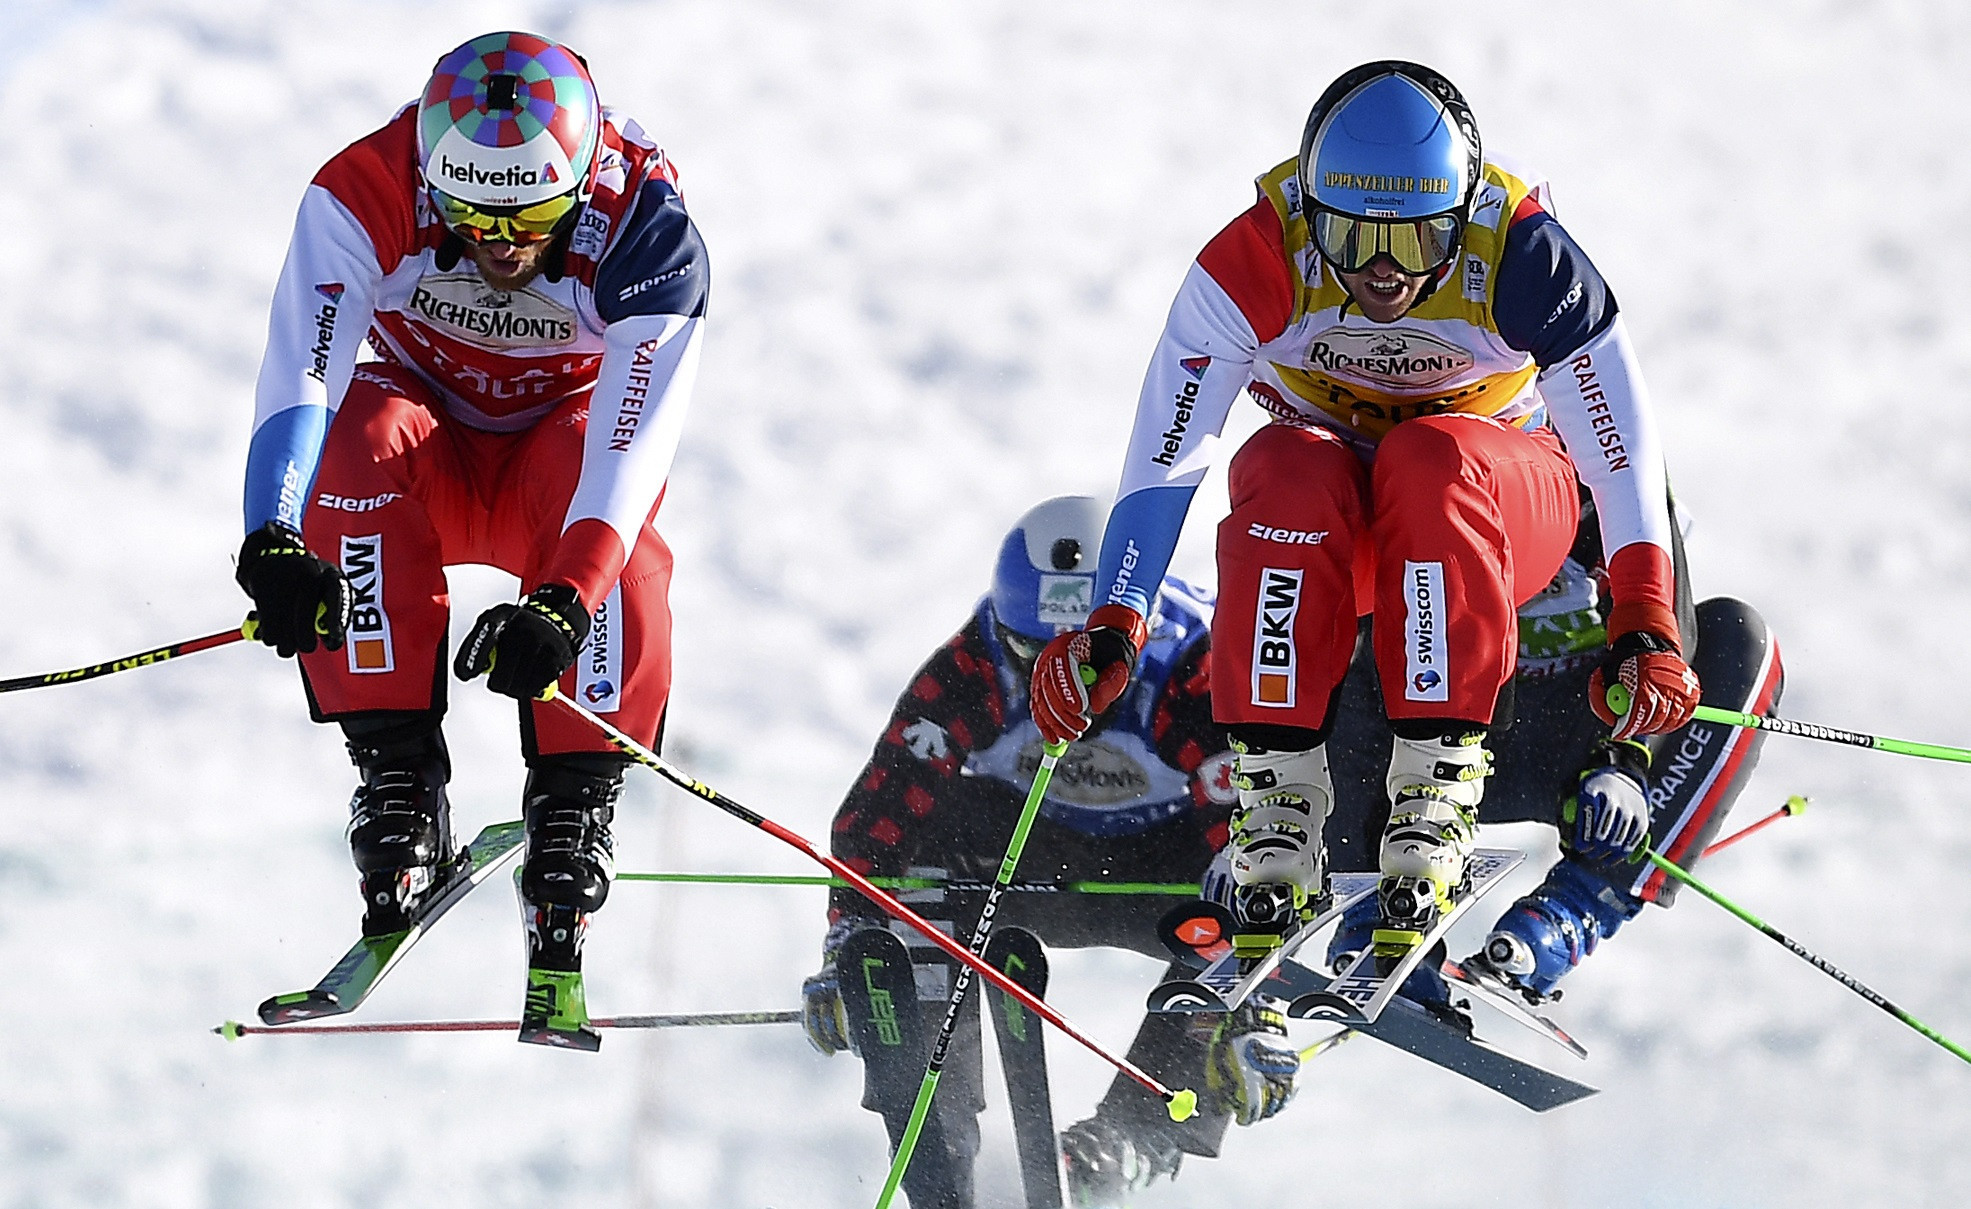 Bischofberger makes it back-to-back wins at FIS Ski Cross World Cup in Innichen